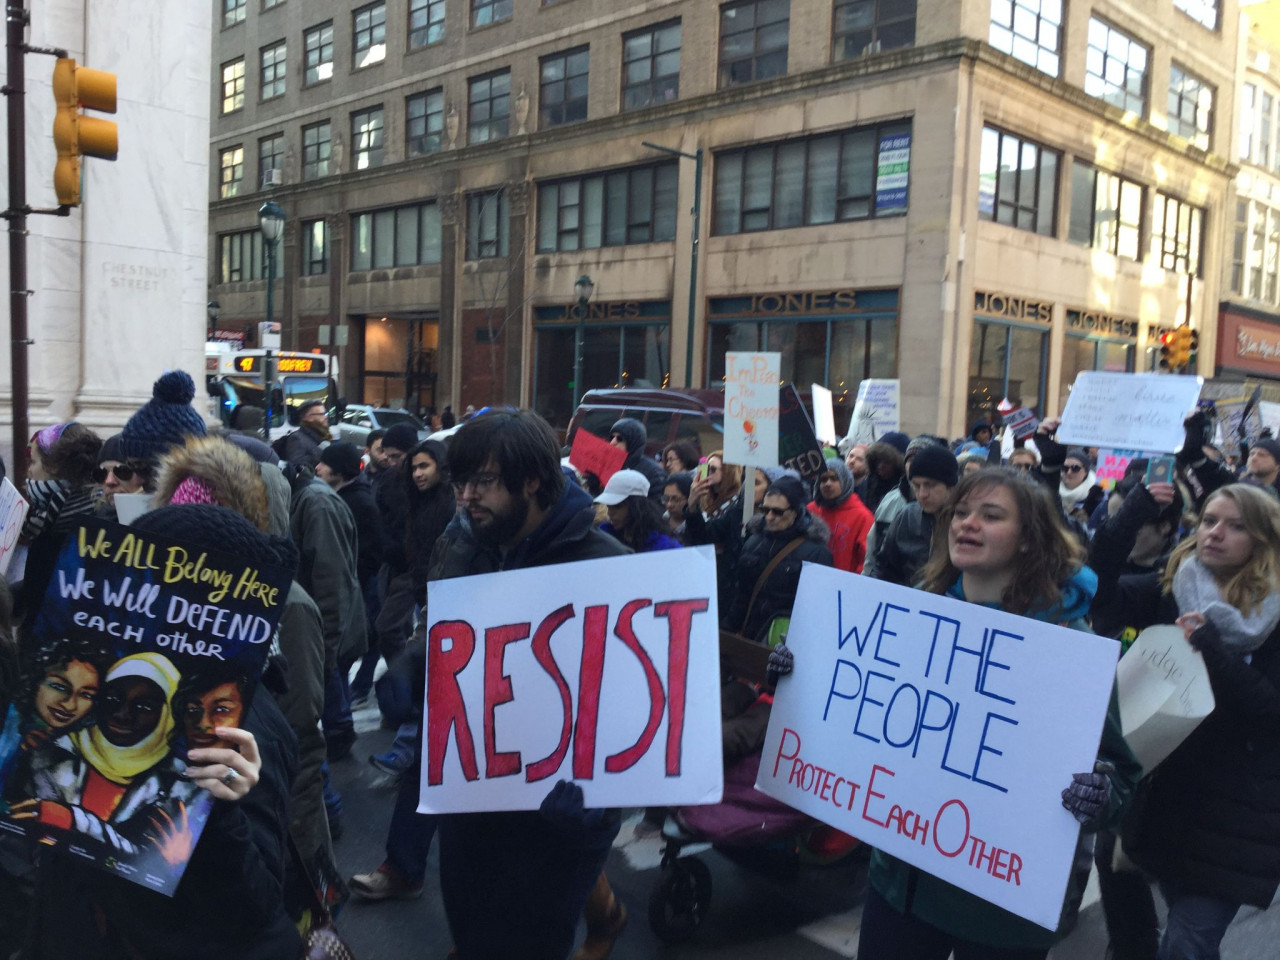 Immigrant Rights Protest - Philadelphia - February 4, 2017 - We The People Protect Each Other